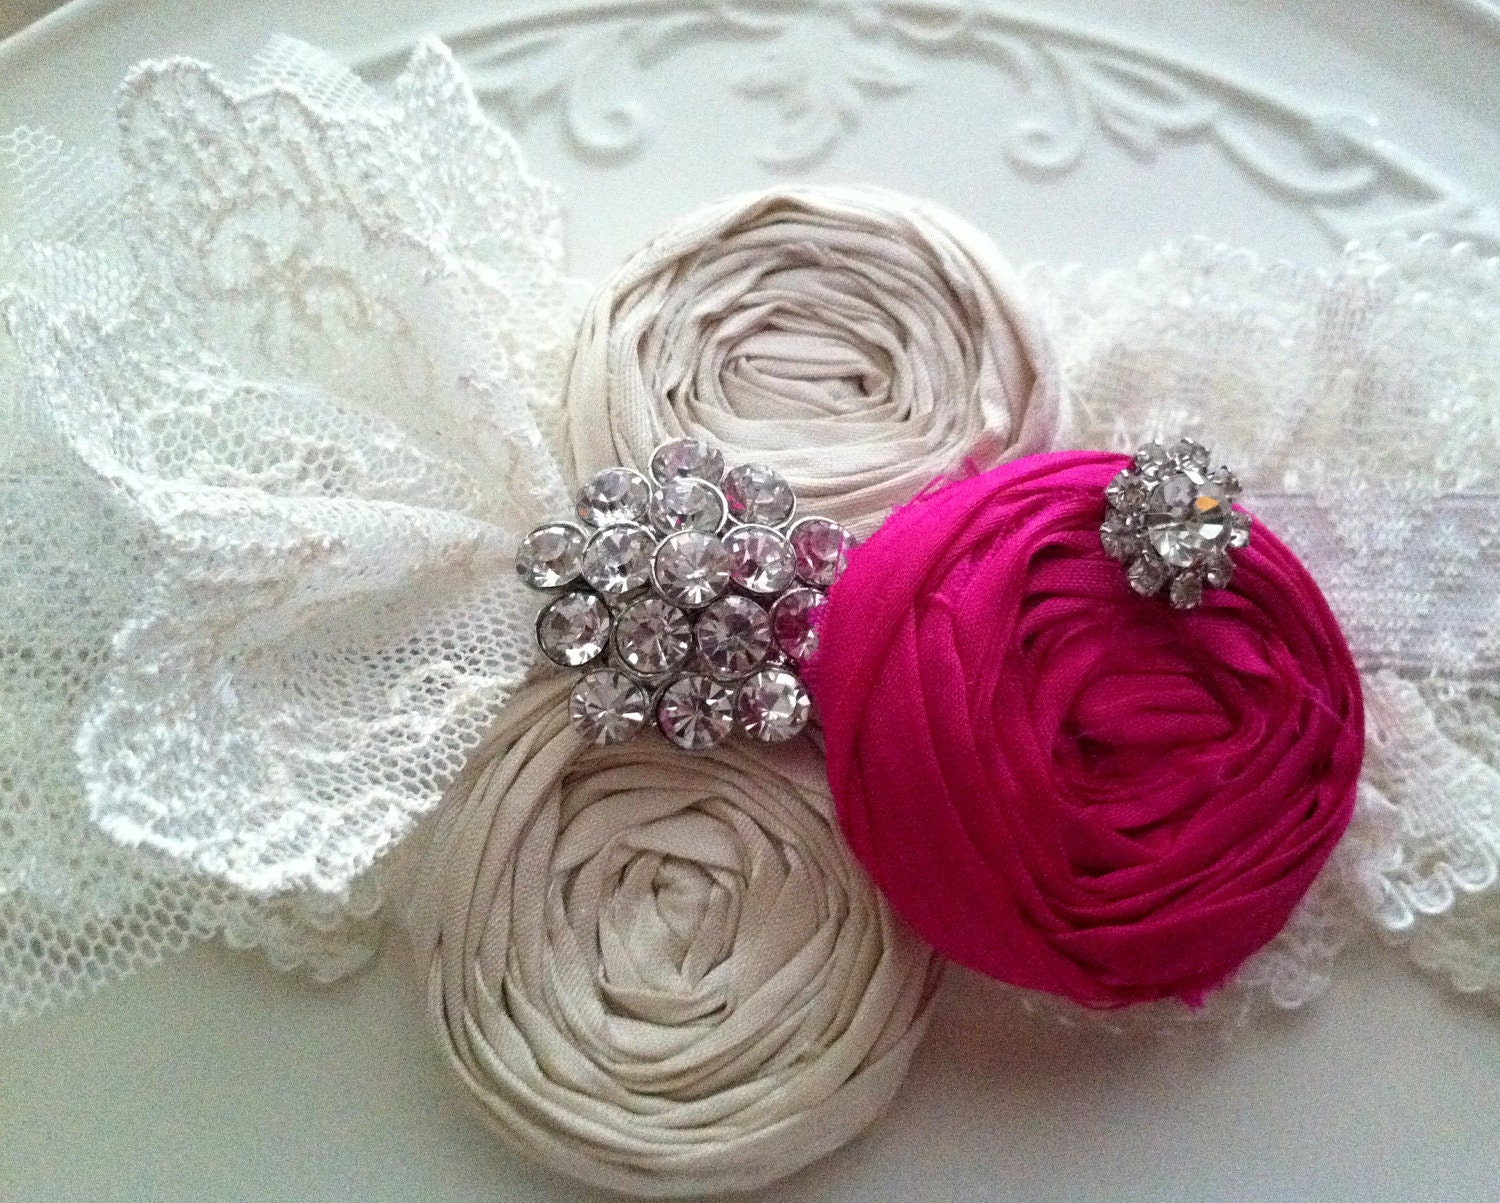 Neon Fashion Lace Garter Pink Fuschia Wedding Garter Vintage Lace and Silk Bright Neon Pink and Ivory Cream Rosettes with Rhinestones